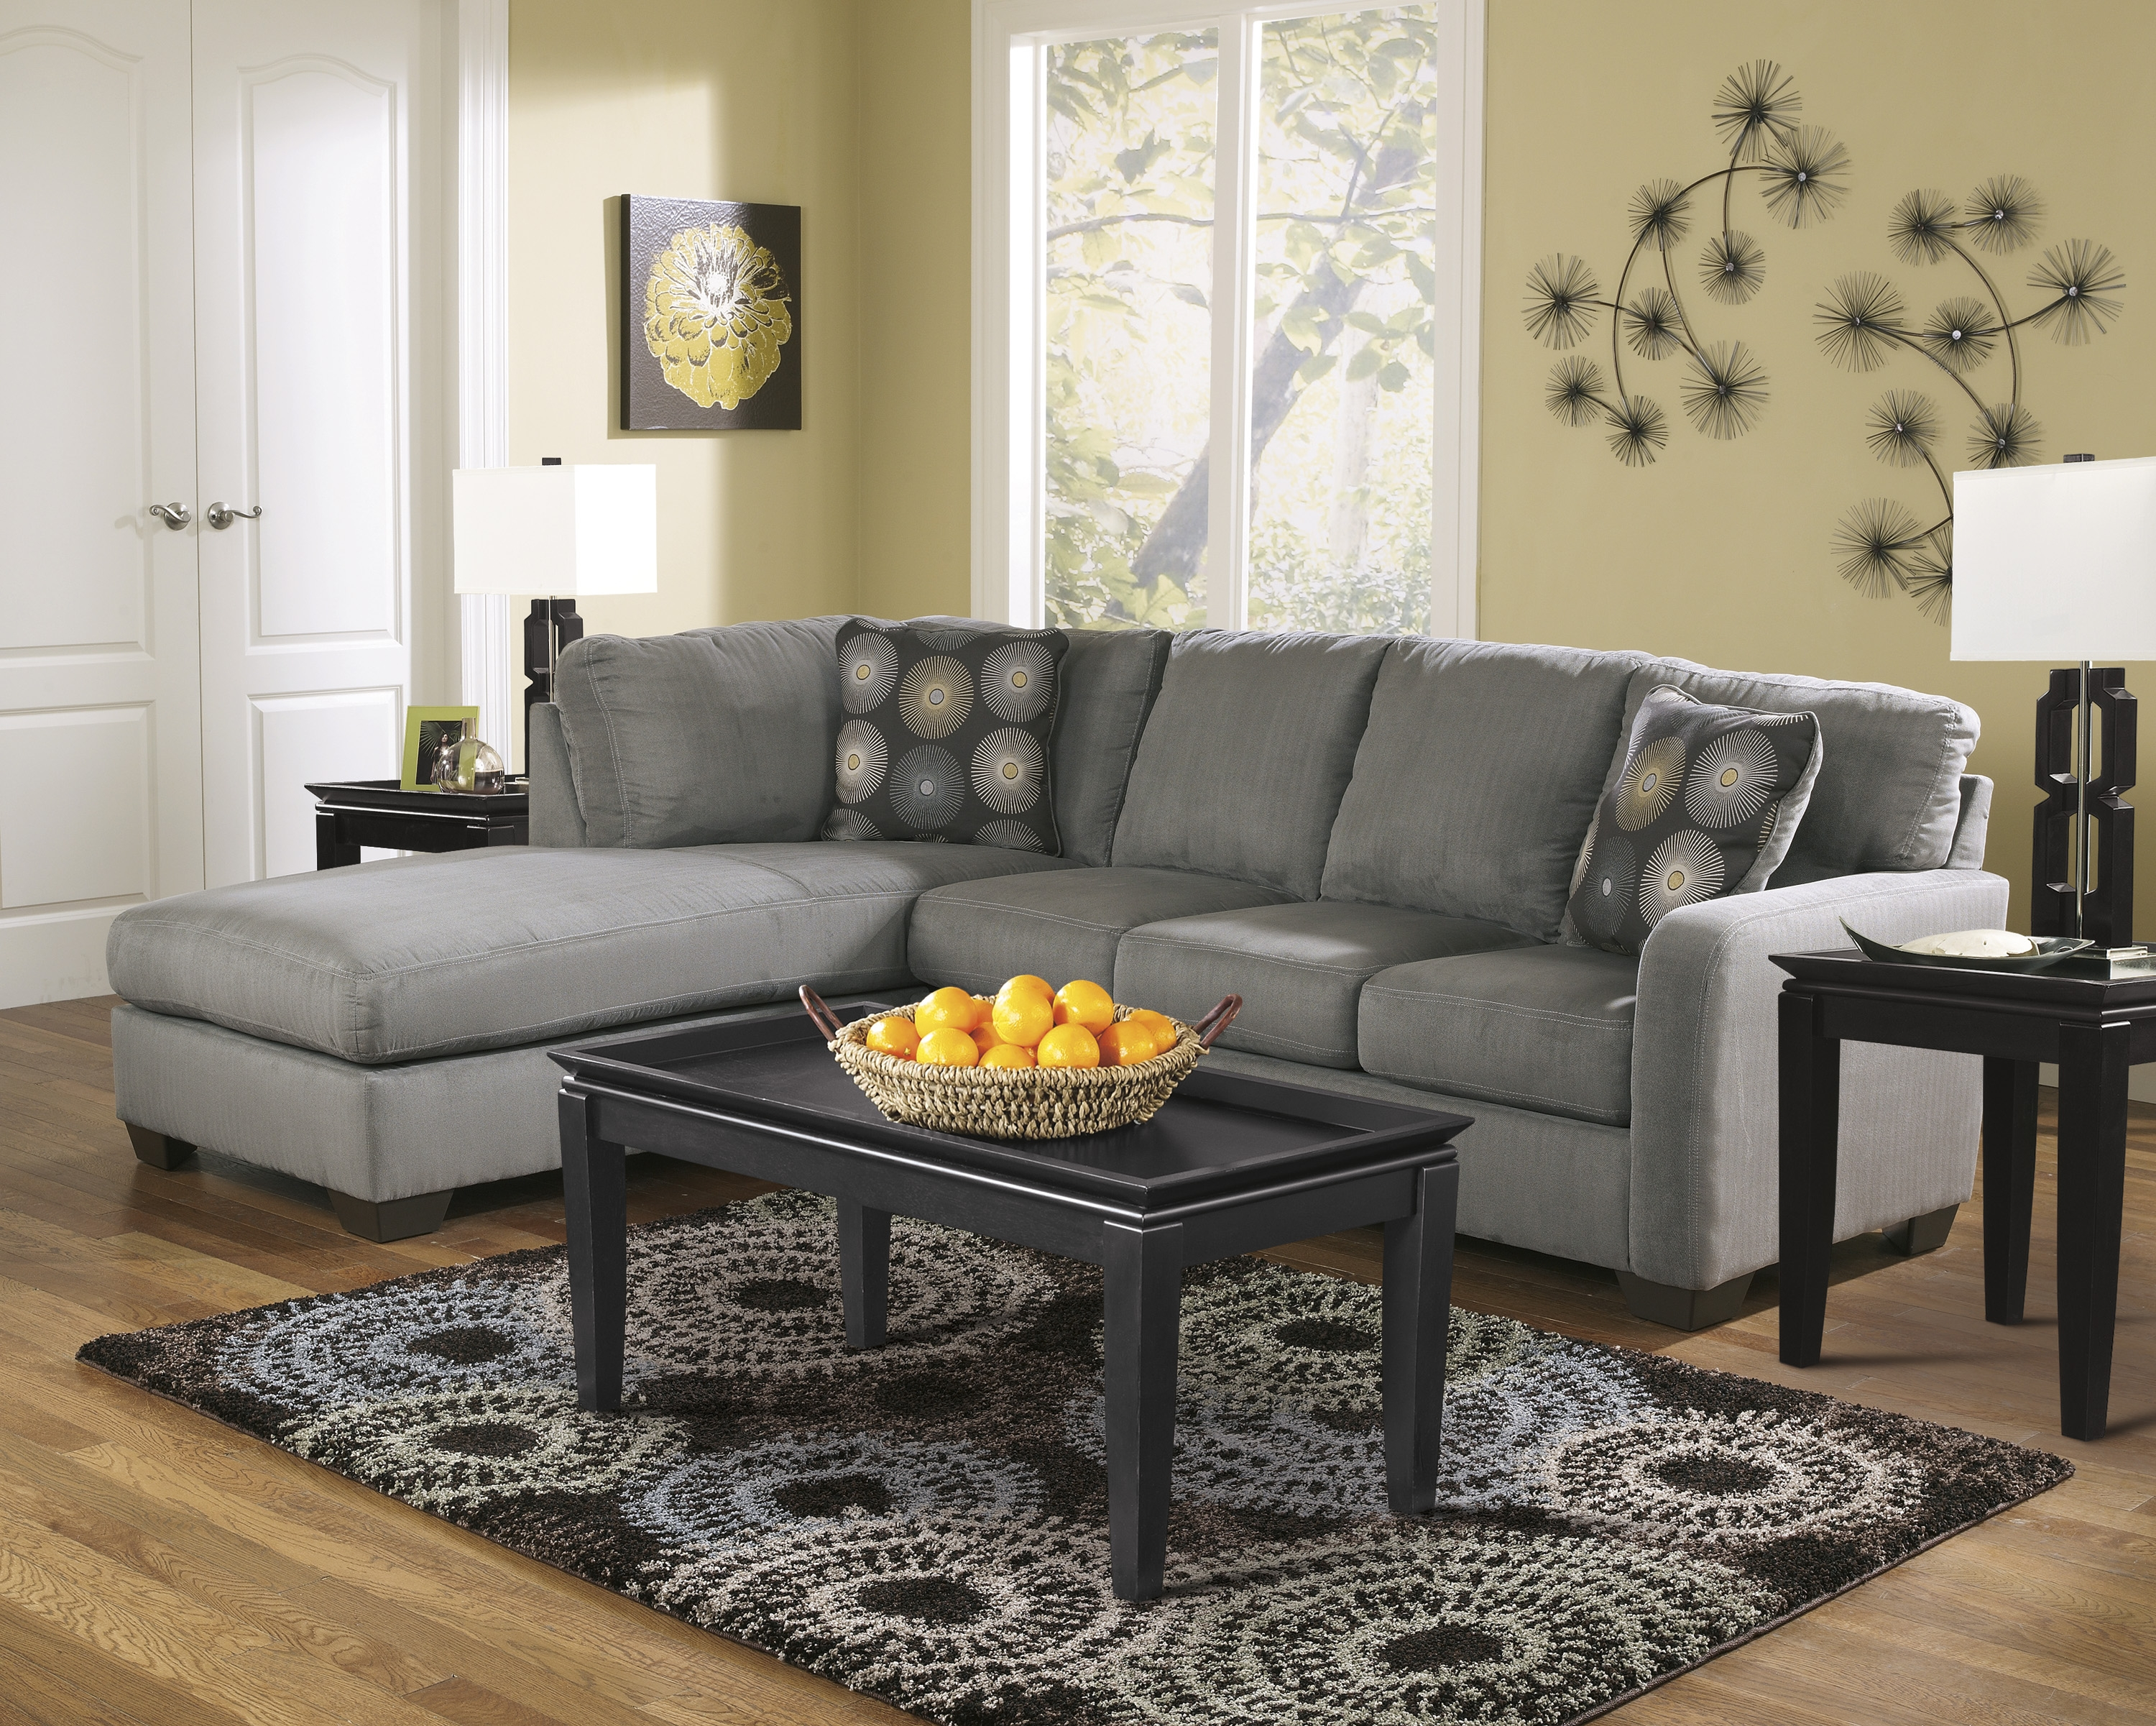 Coffee Table For Sectional Sofa With Chaise Top Ln8 Umpsa 78 Sofas With Coffee Table For Sectional Sofa With Chaise (Image 6 of 15)